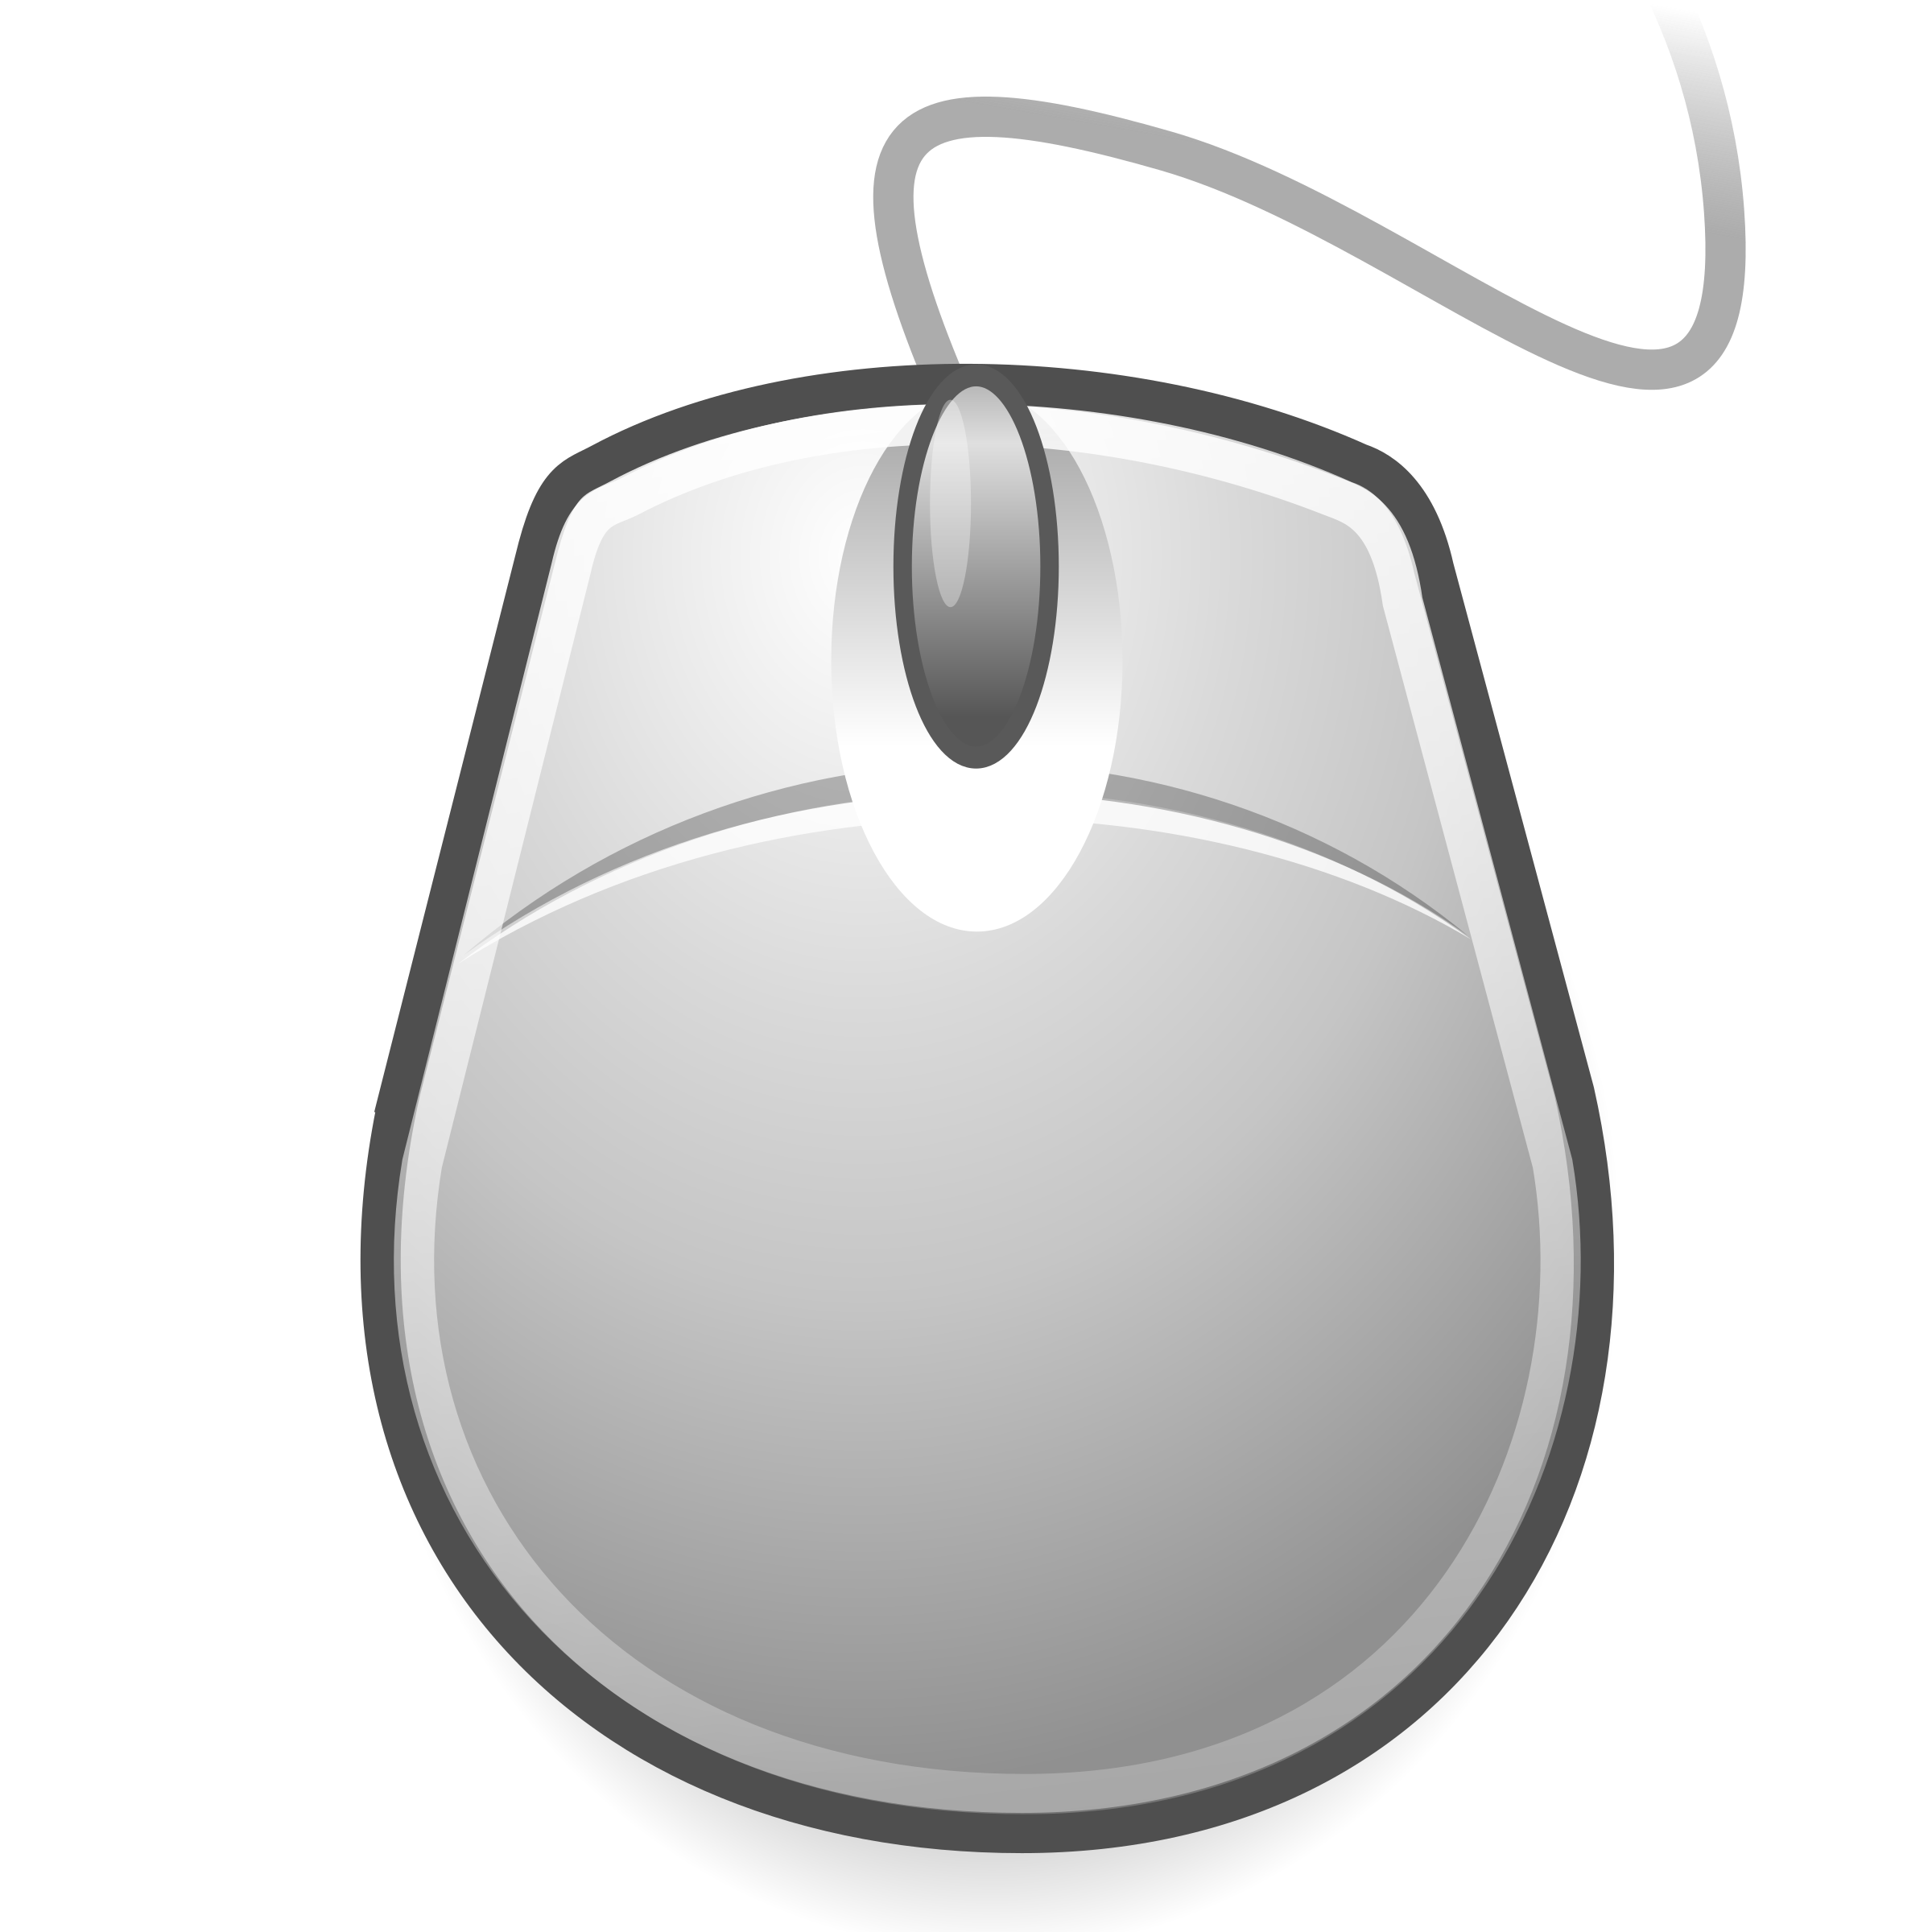 Mouse Transparent Png Pictures Free Icons And Png